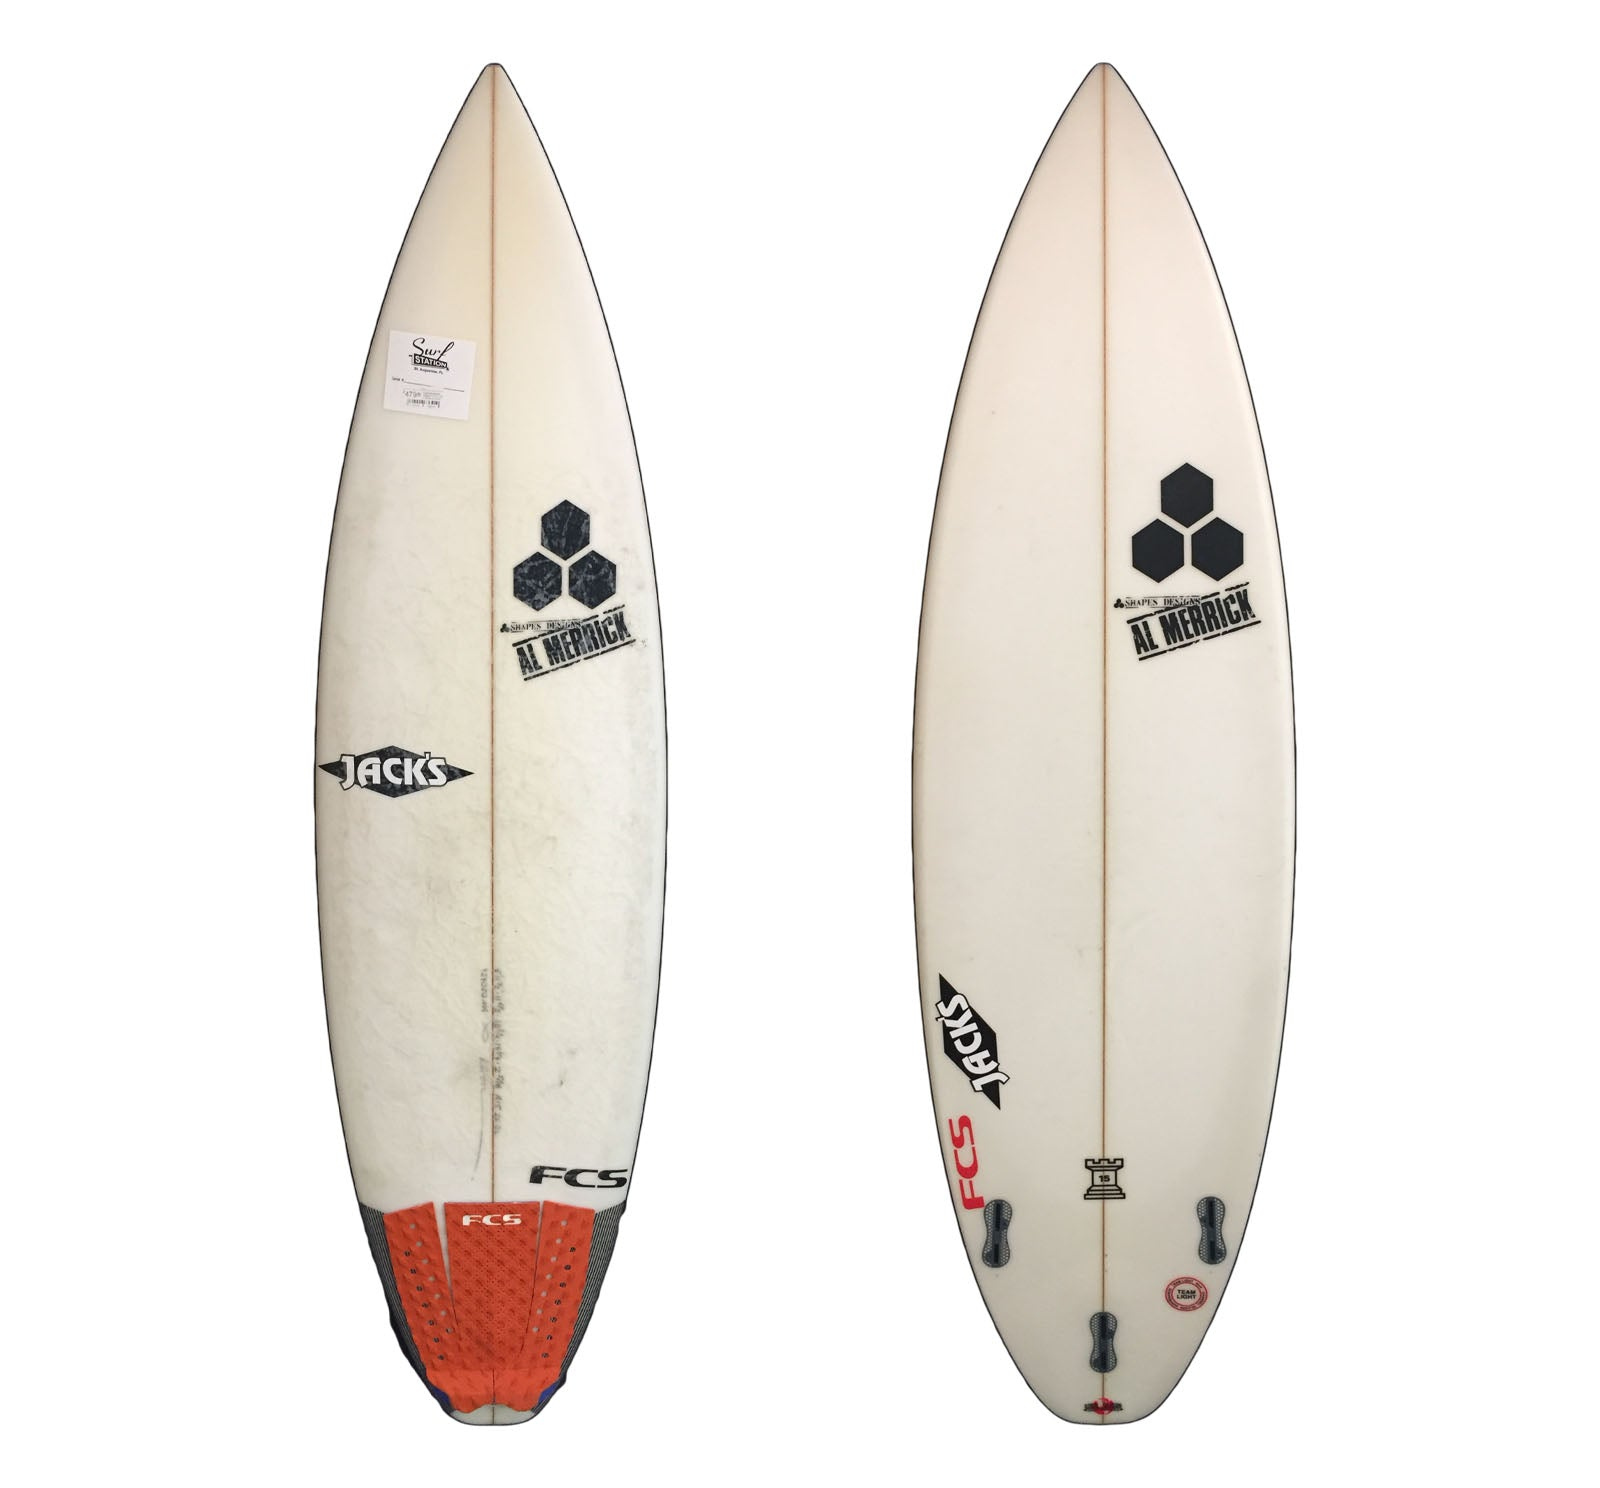 Channel Islands Rookie 15 5'11 1/2 x 18 3/4 x 2 5/16 26.8L Used Surfboard (Team Custom For Kiron Jabour)